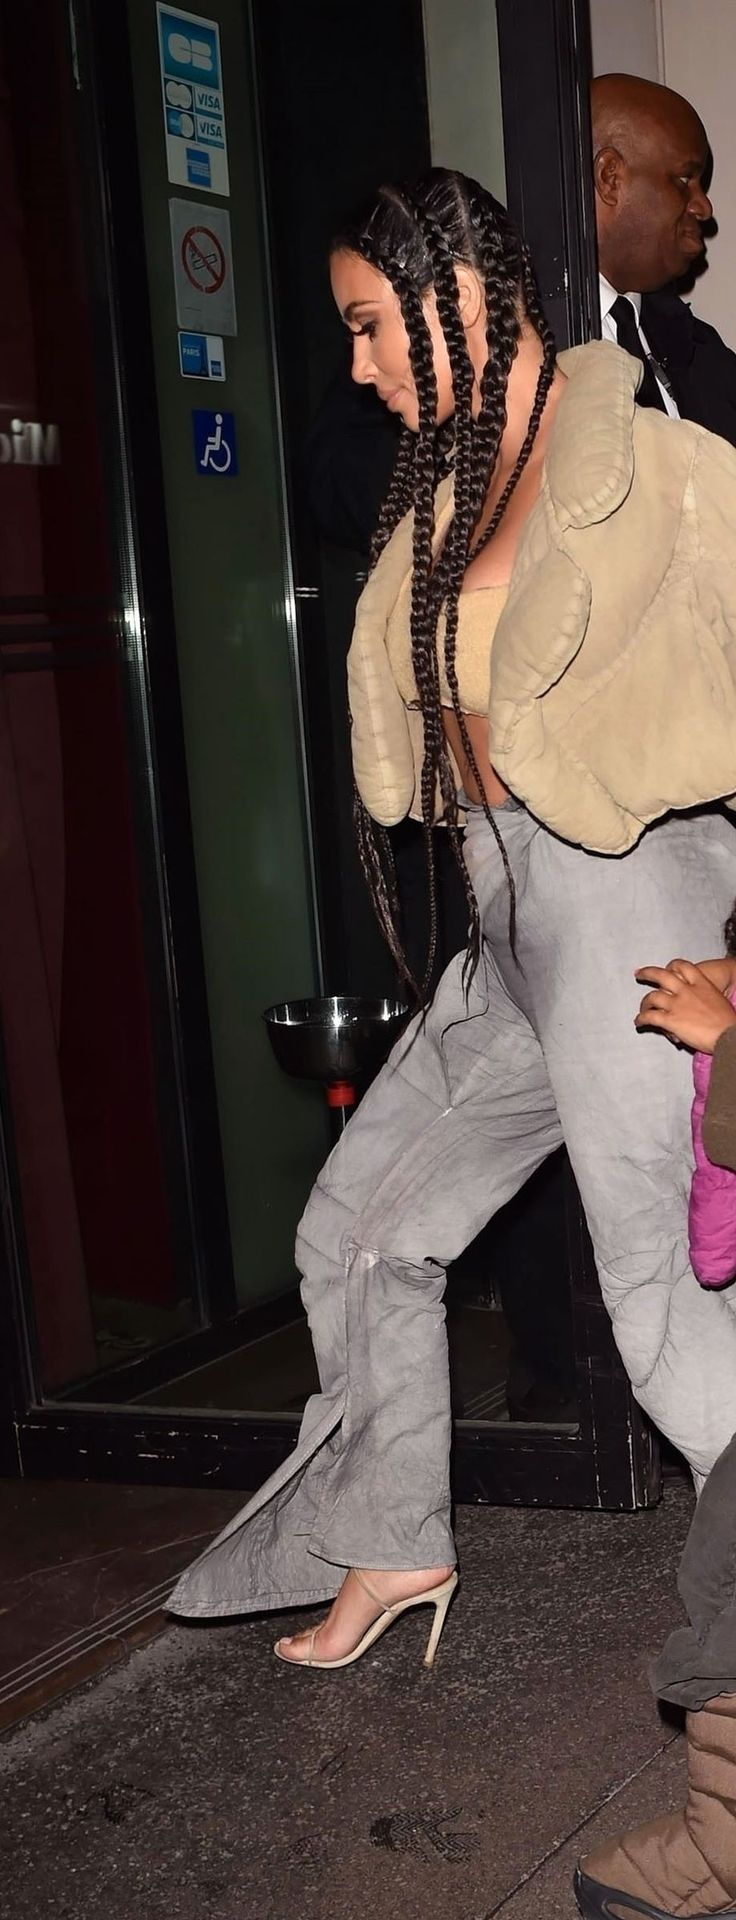 Kim Kardashian Arrives at the Kanye West after party in Paris (21 Photos)